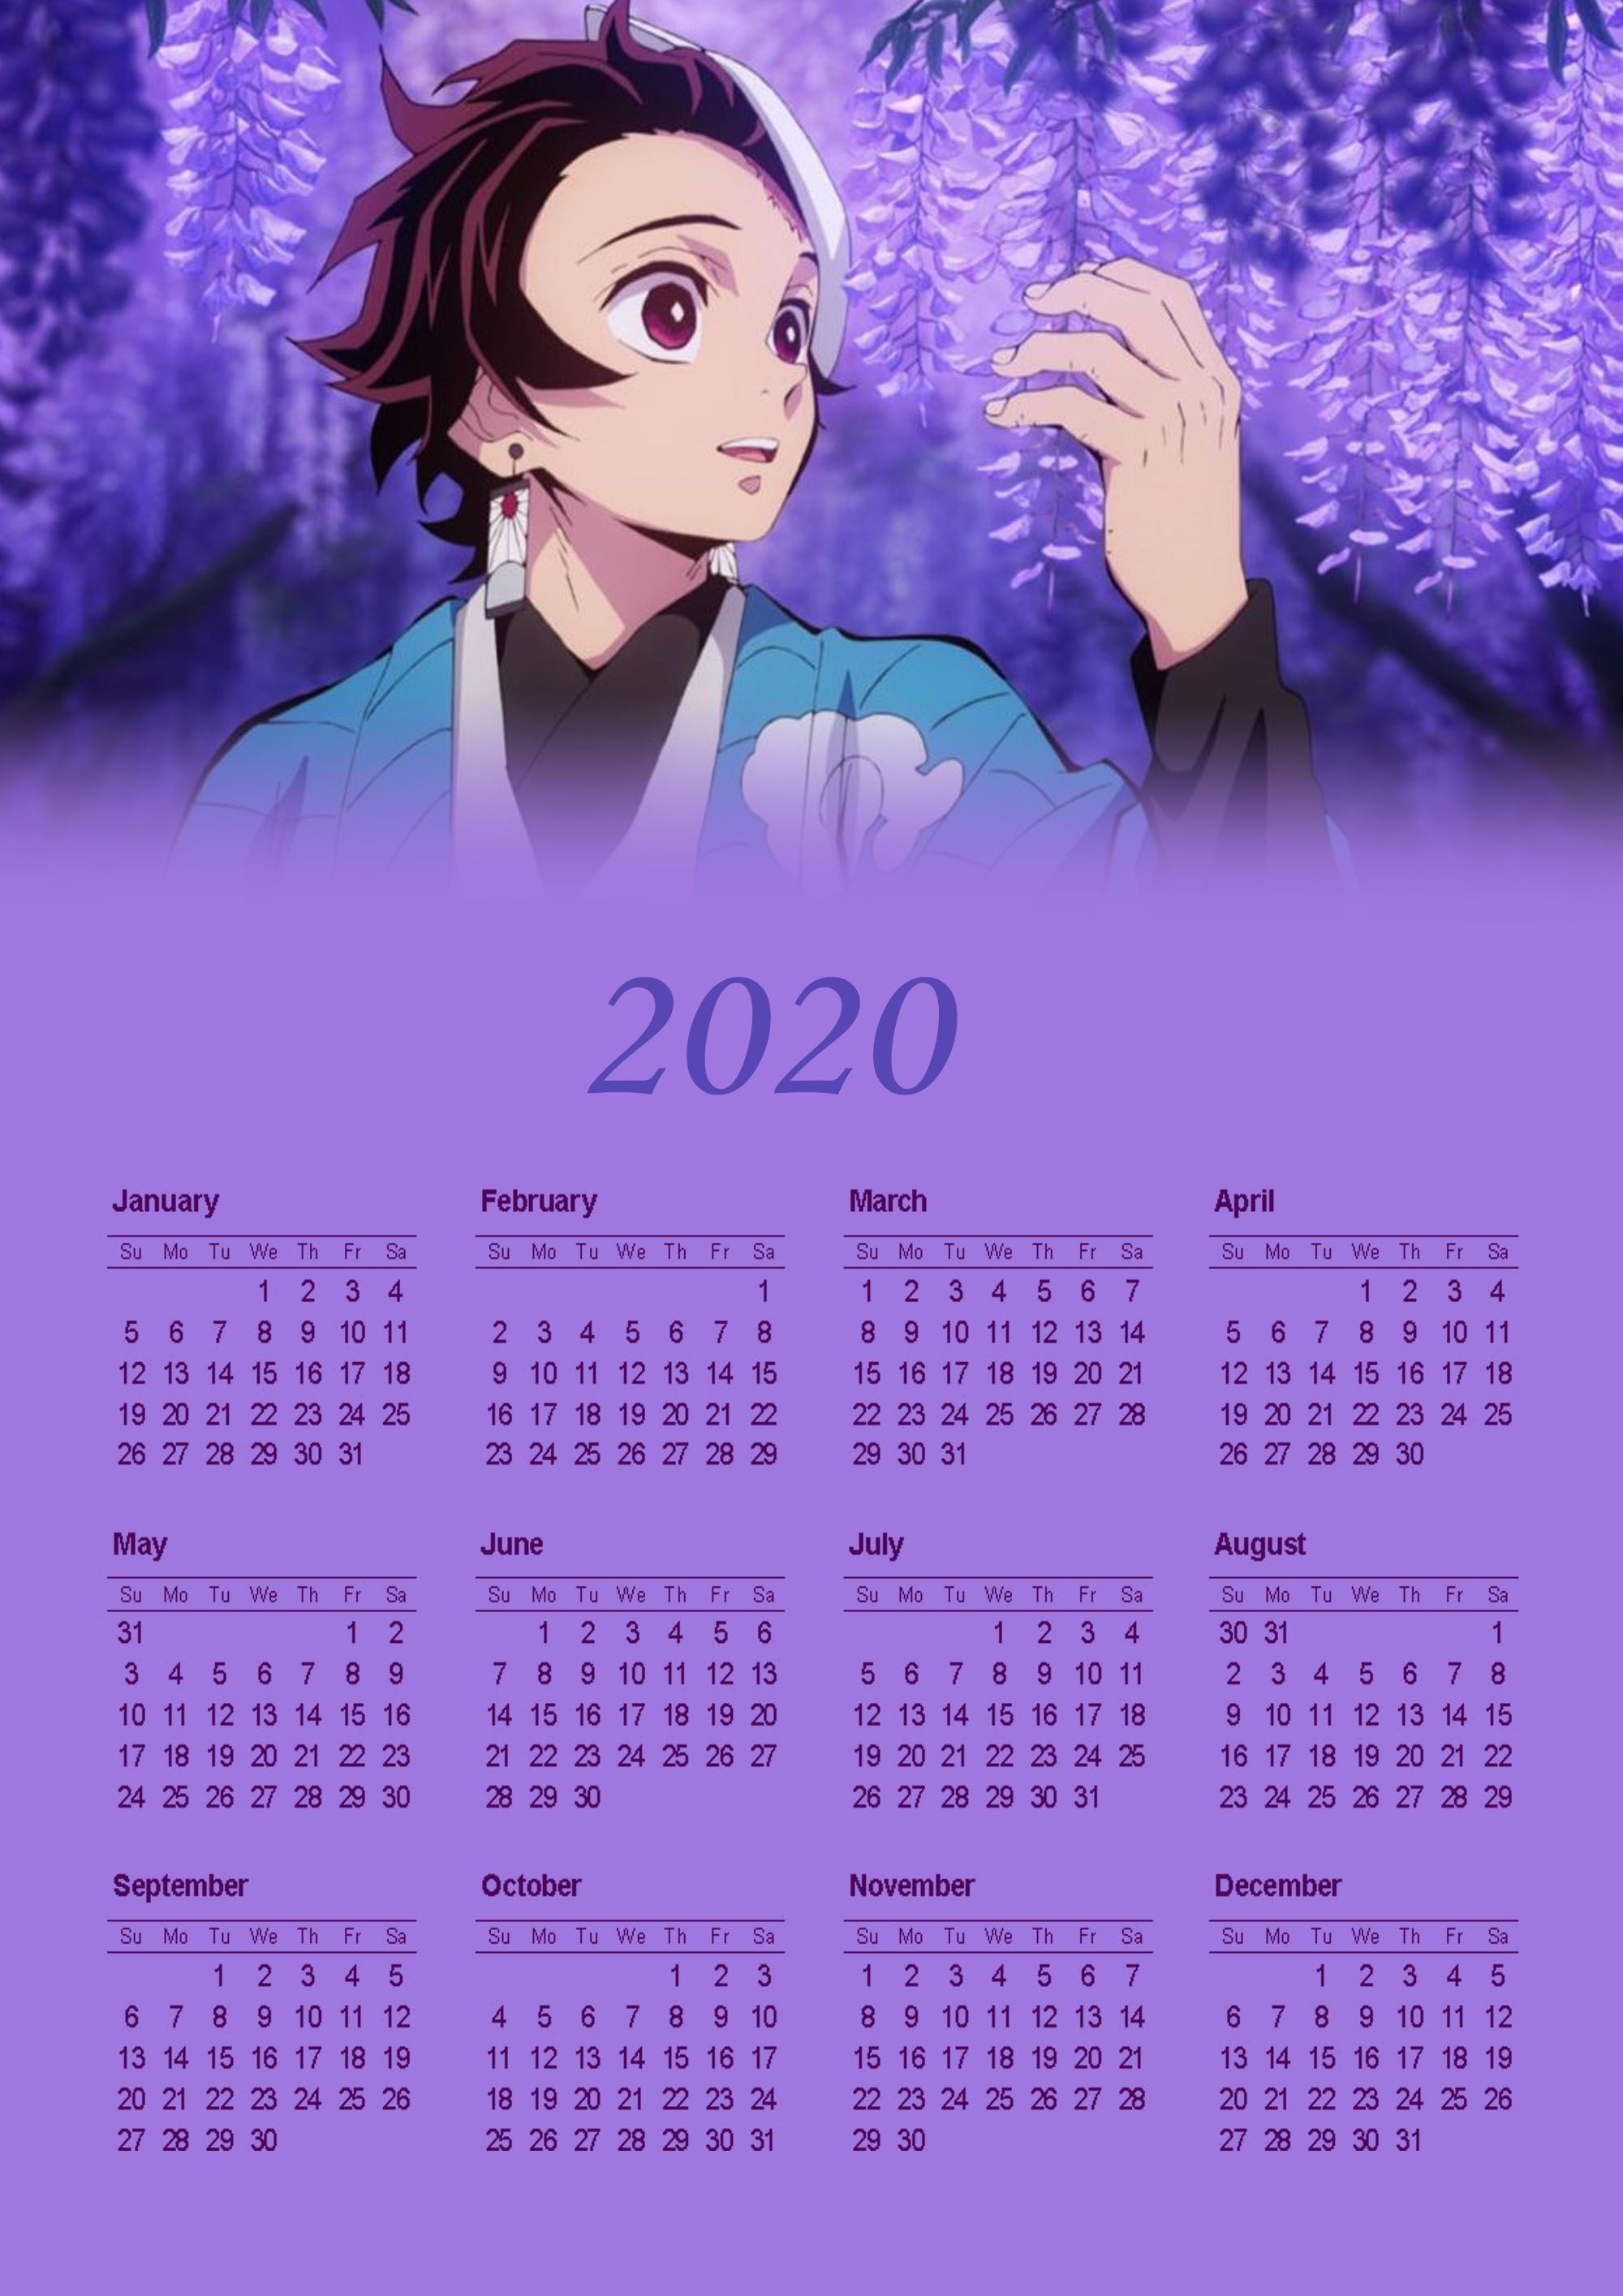 New Photo 2020 Calendar Anime Concepts How Do You Want To Make A Move Outstanding For Someone Else As Well As Imagine You Could Utilize Th Anim Em 2020 Anime Desenhos